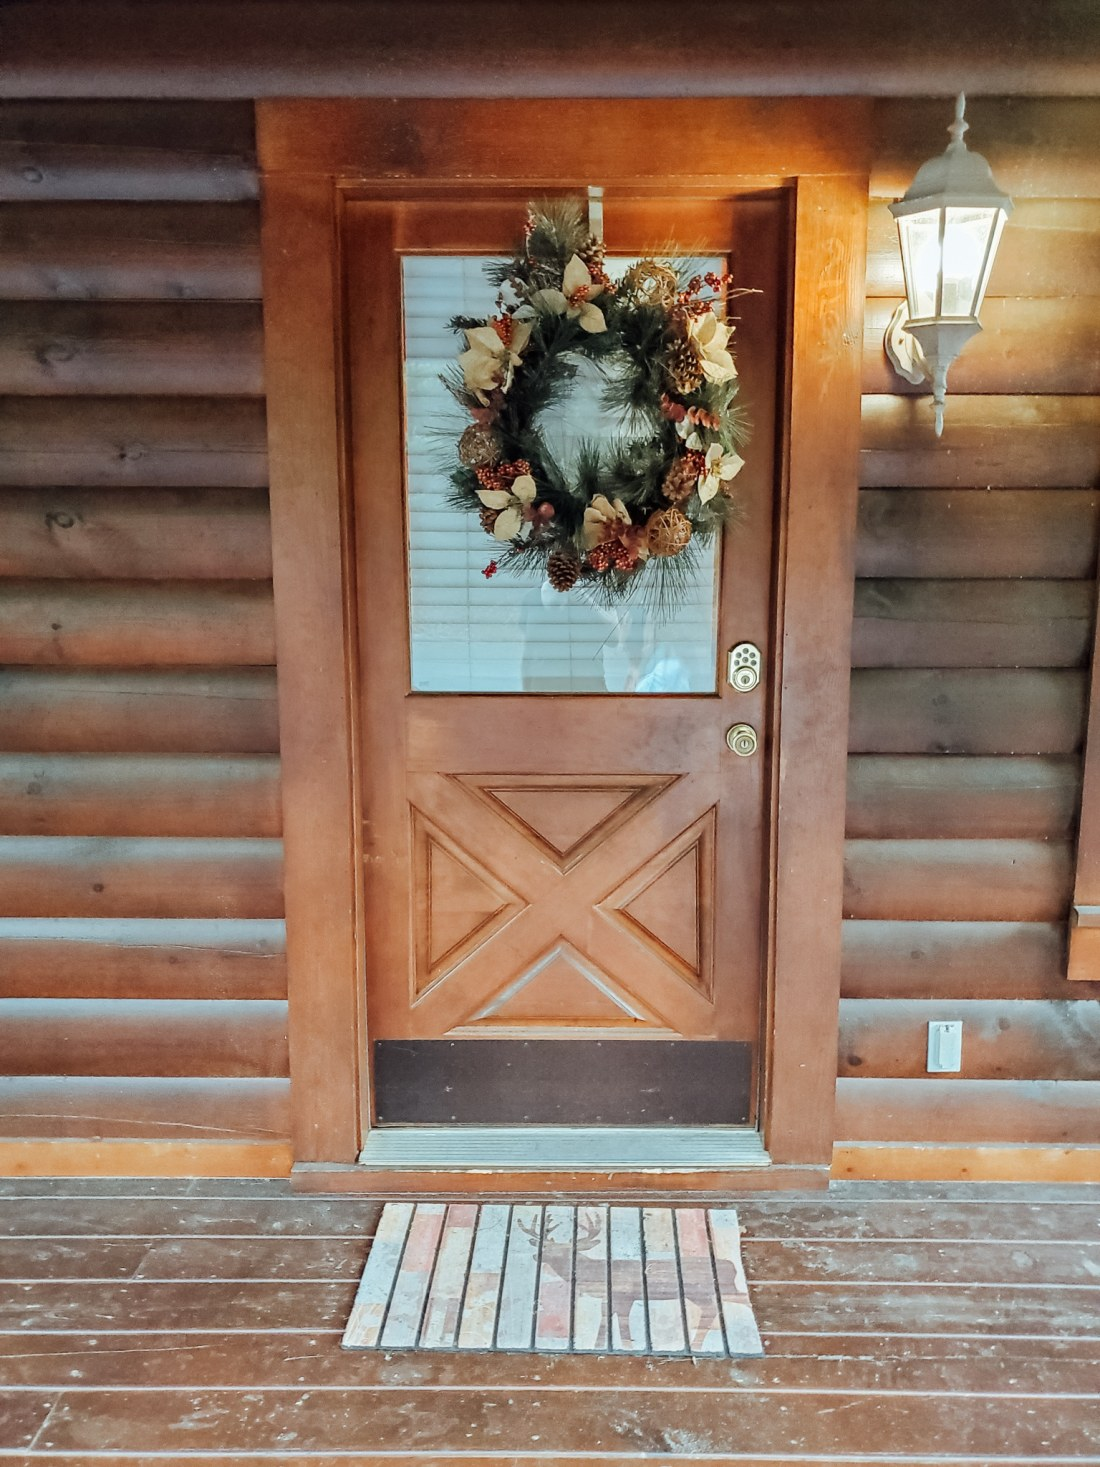 The Mountain Charm Eagles Ridge Resorts Cabin Front Door. The Mountain Charm 3 Bedroom Cabin at Eagles Ridge Resort offers ample space and luxury. The perfect place to stay during a family vacation to Pigeon Forge, TN.